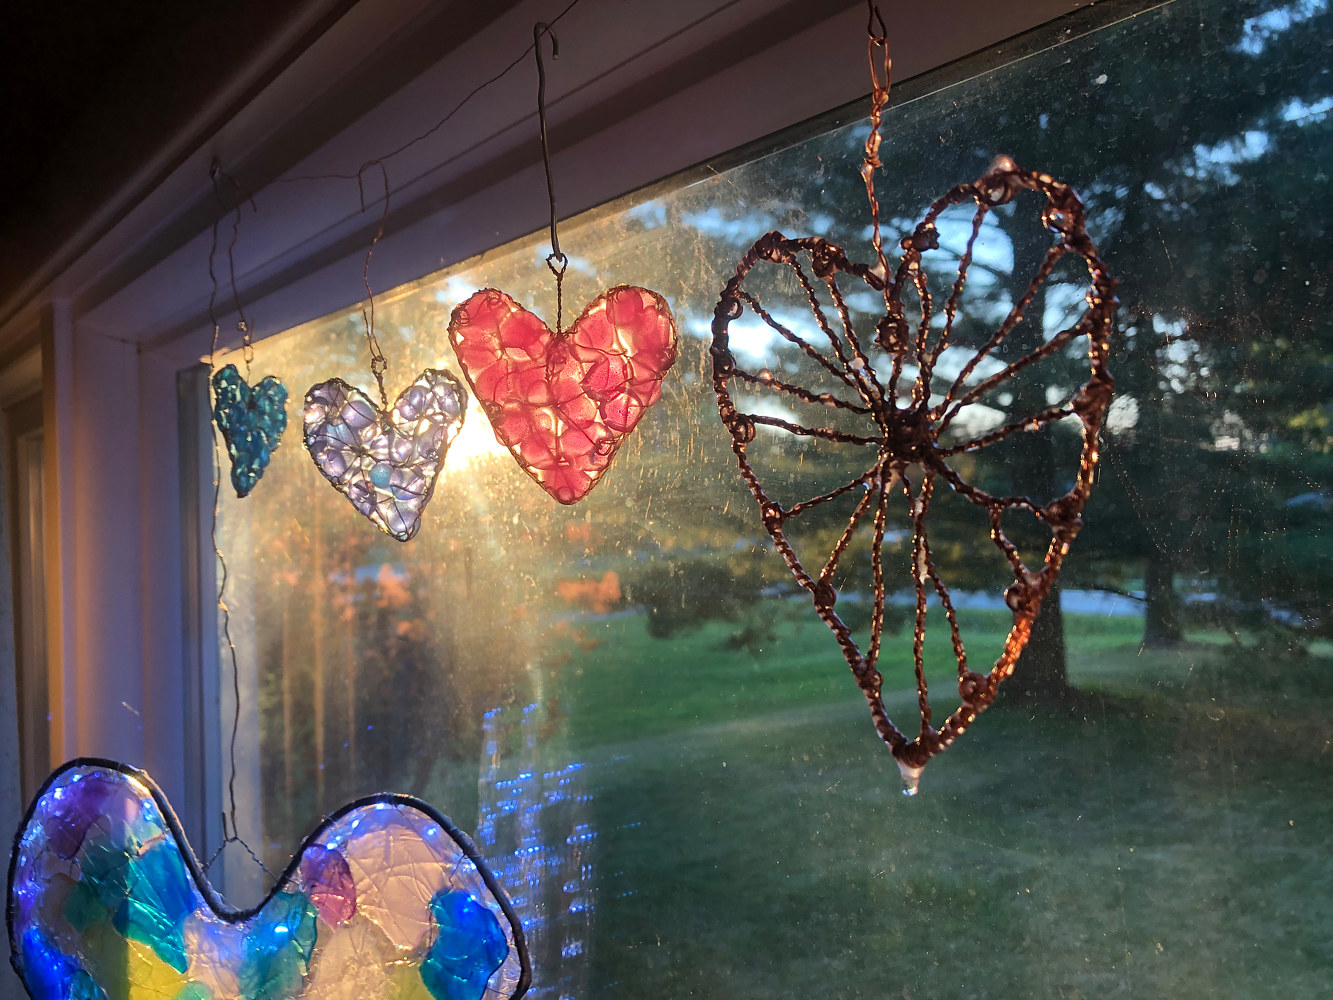 Front Window Hearts at sunset by Steven Simmons